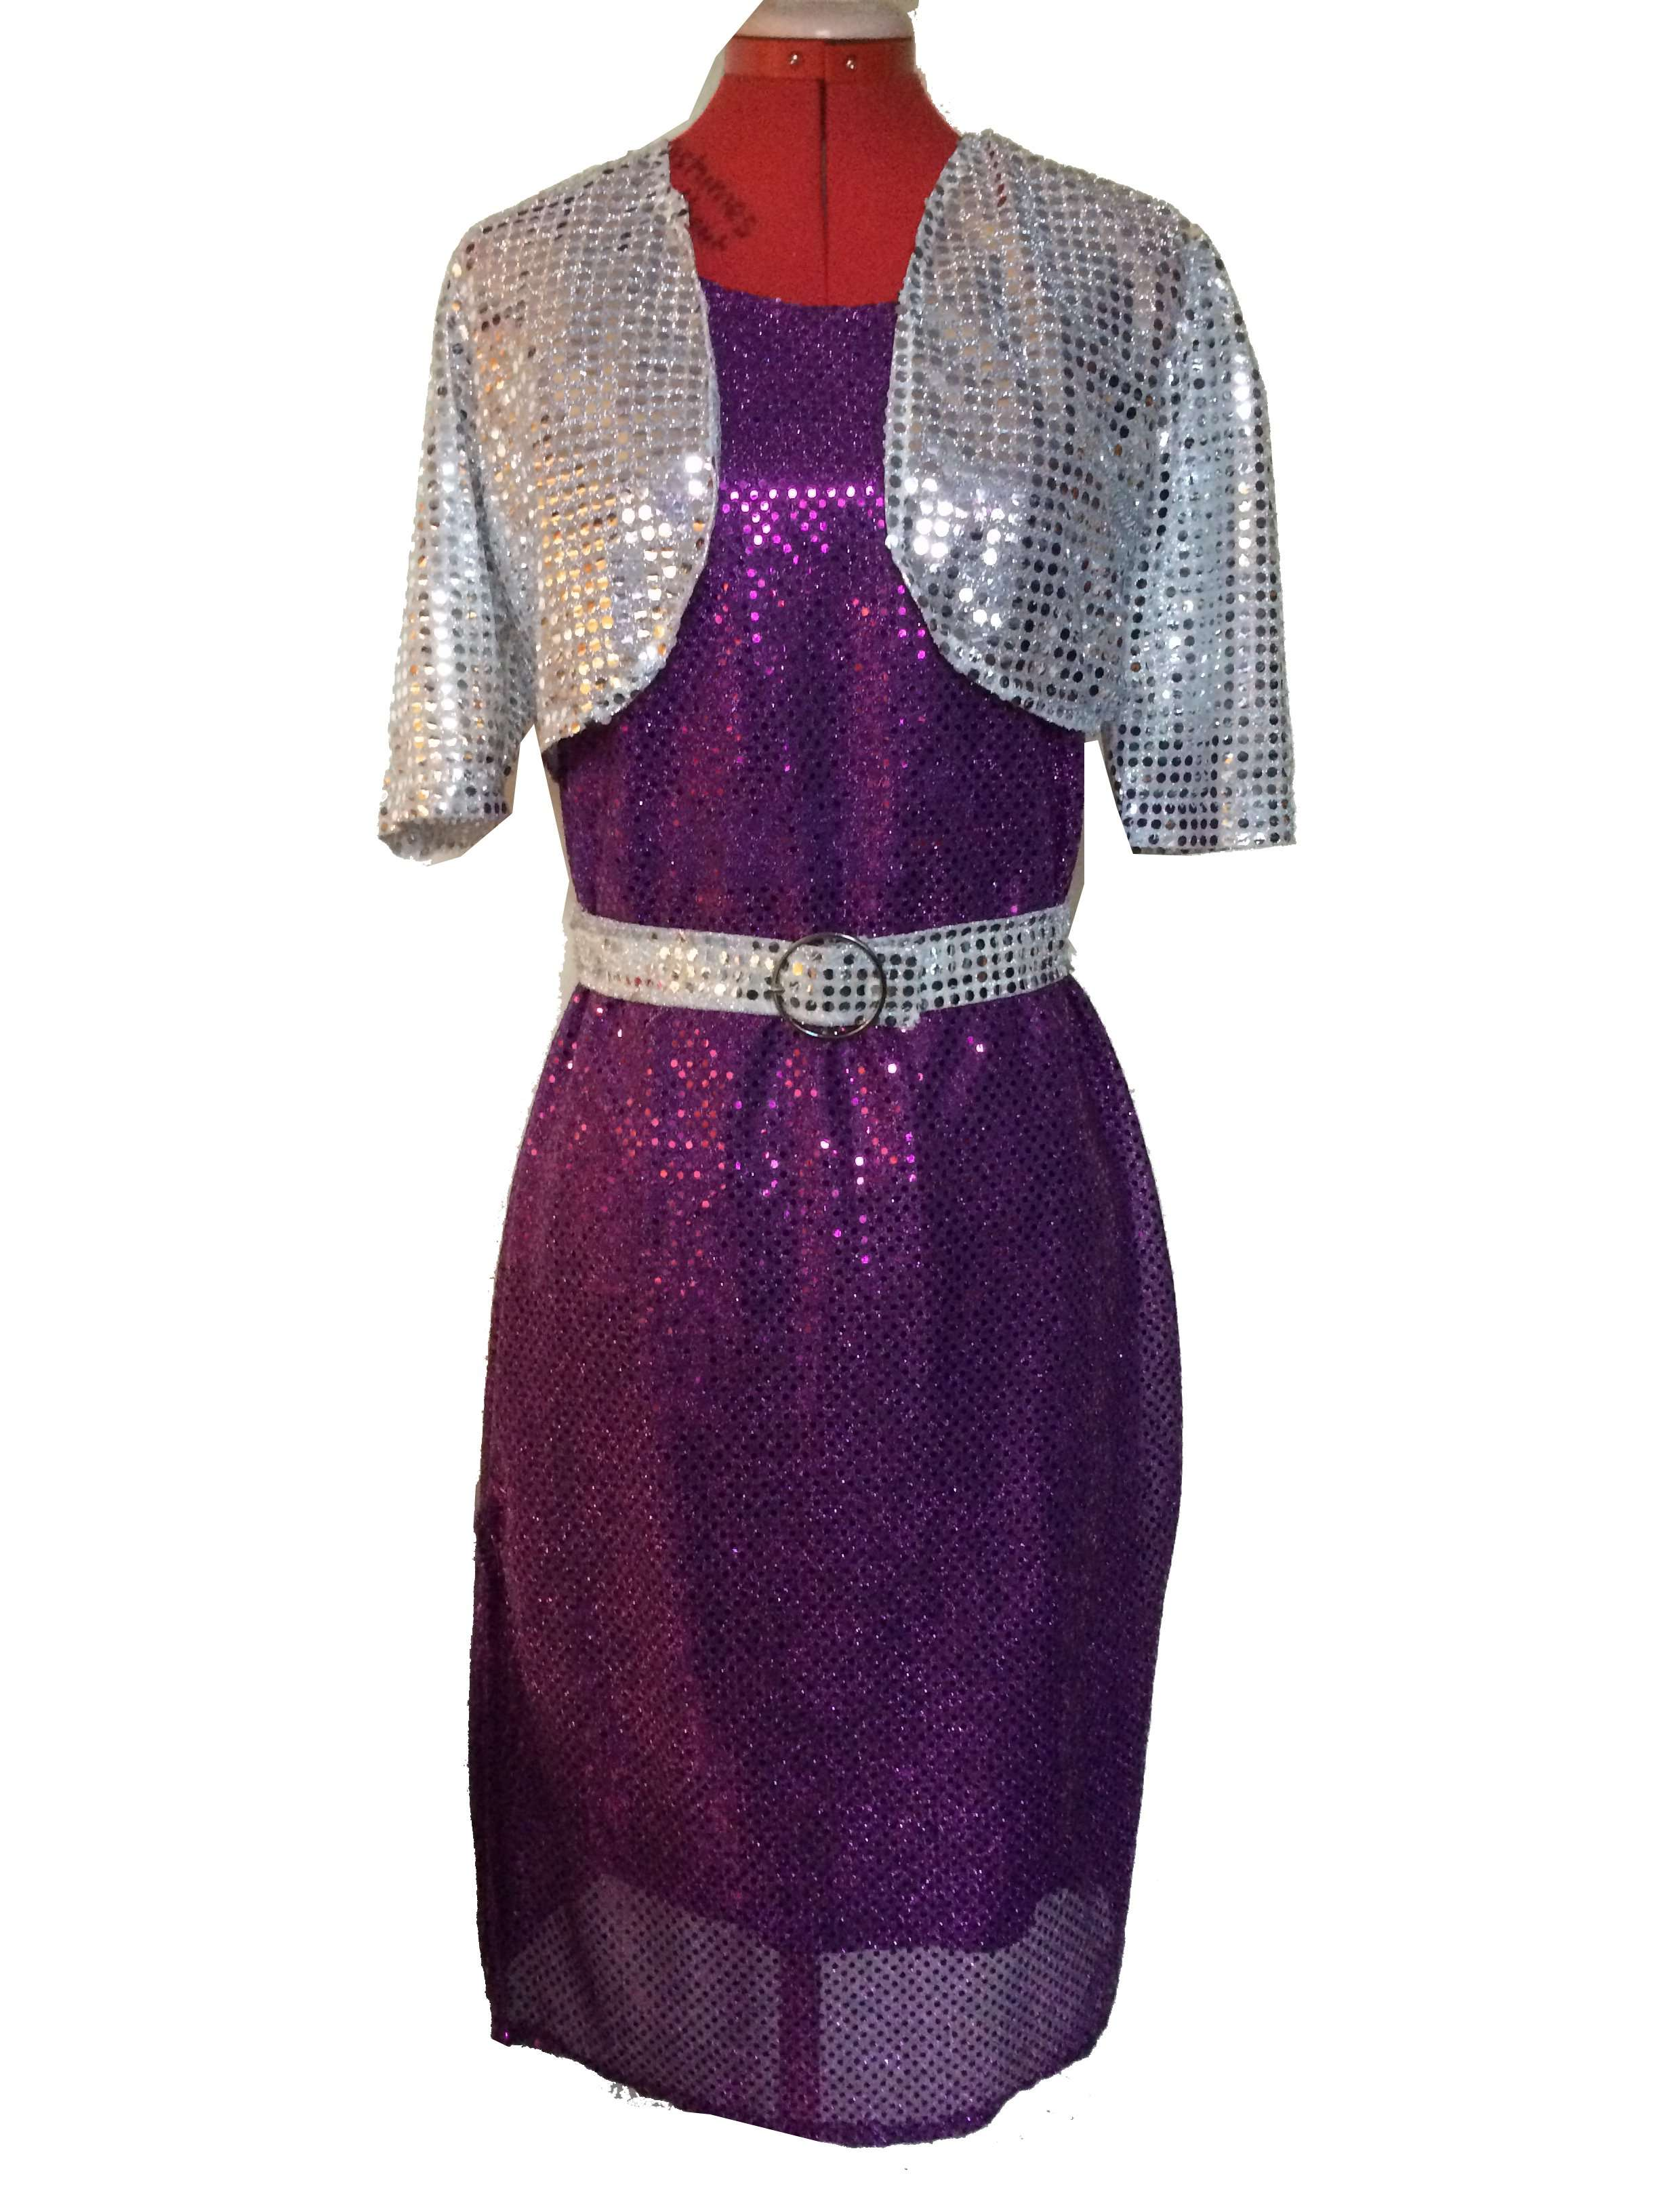 Purple Glitzy Dress Costumes Without Drama